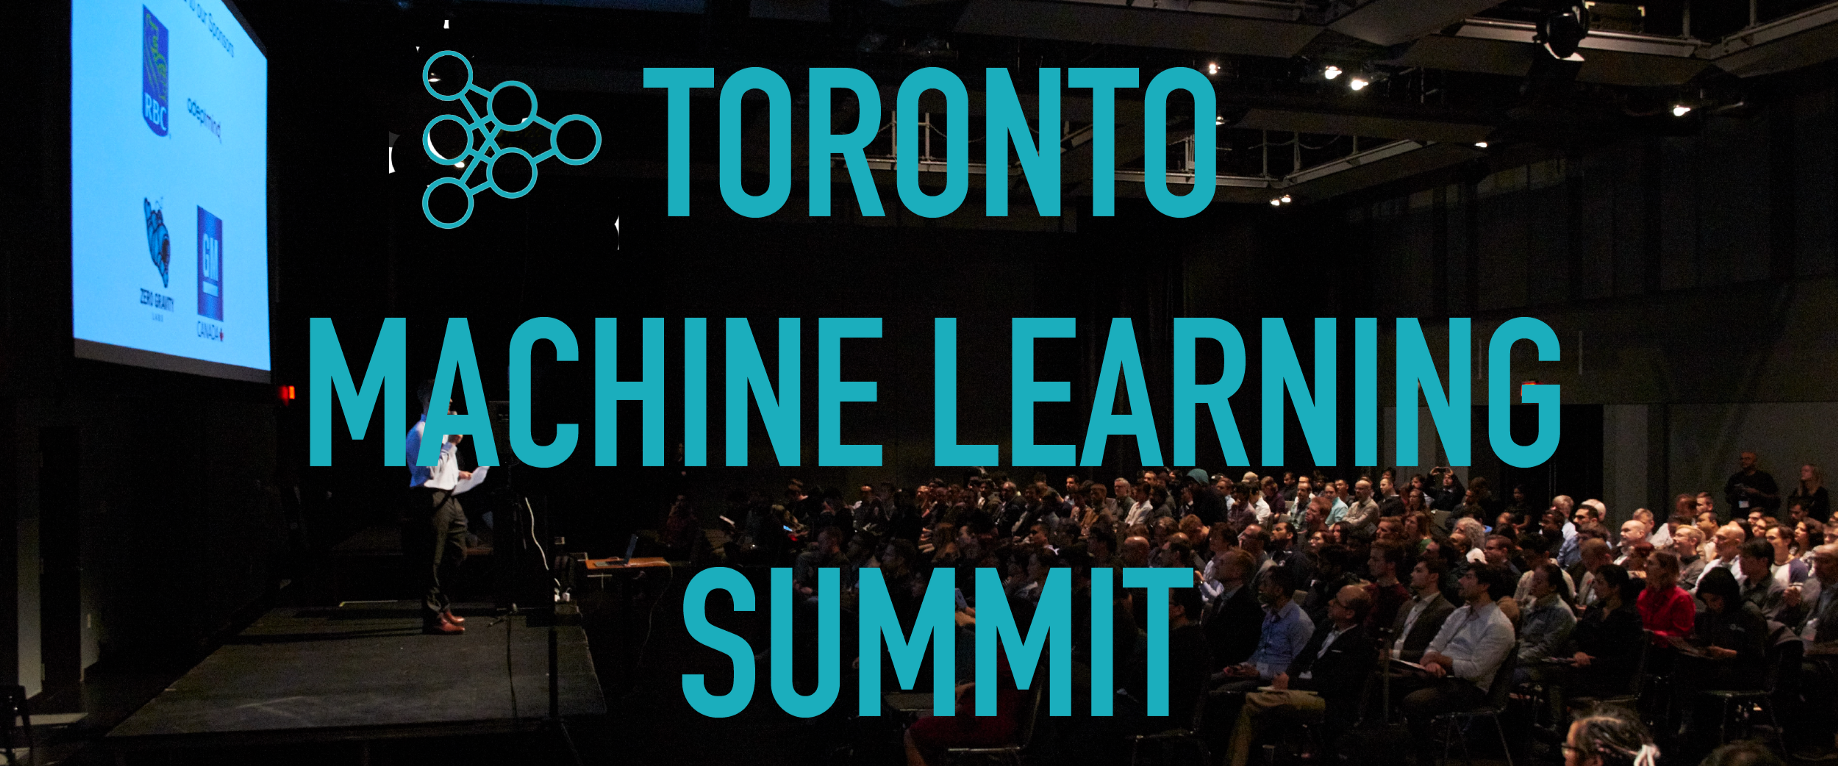 Notes from Toronto Machine Learning Summit (2018) - Towards Data Science